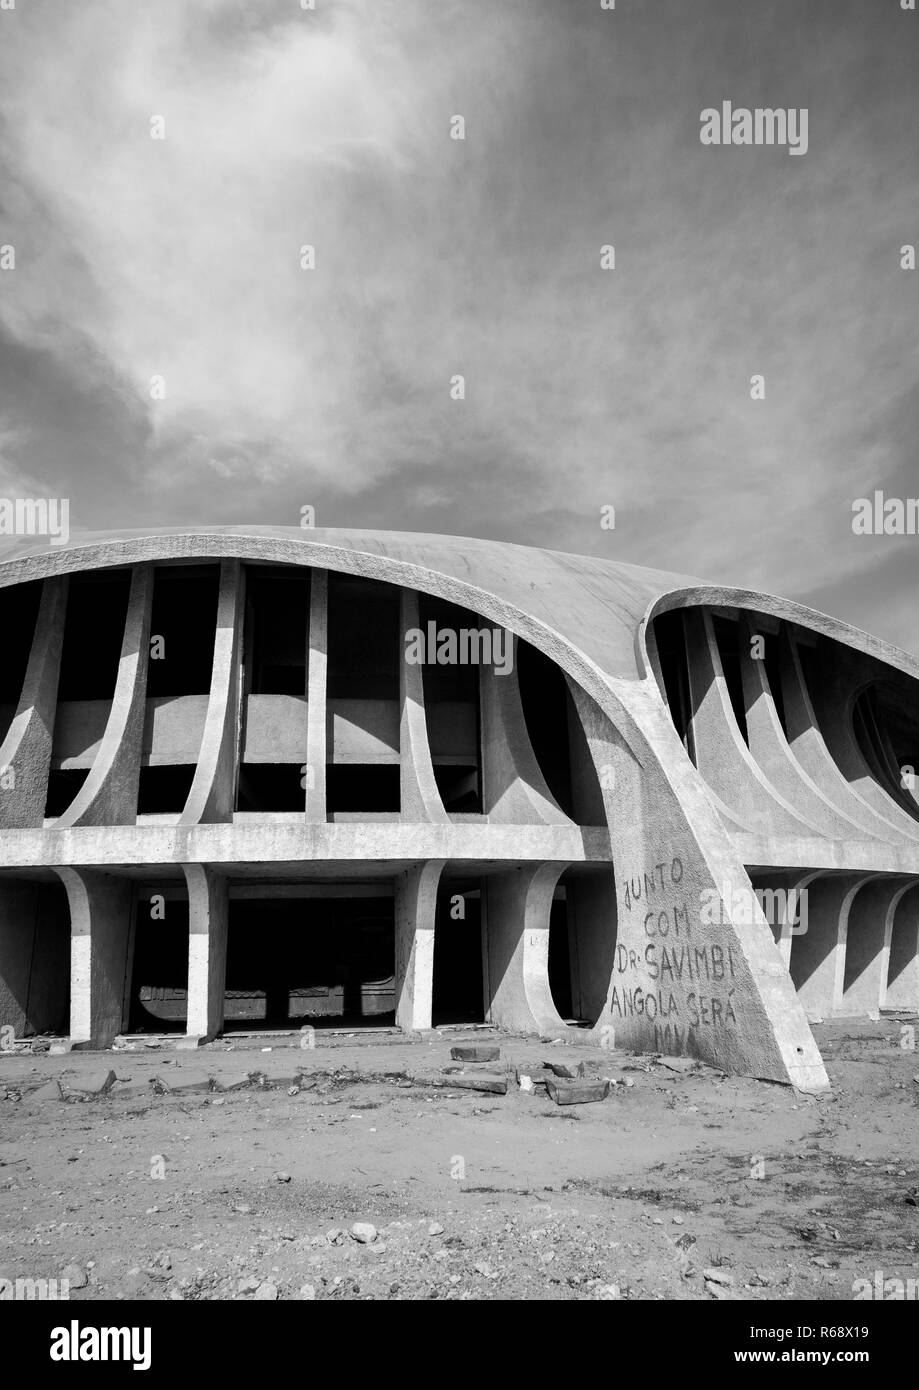 Cine Estudio, an abandoned movie theatre from the Portuguese colonial era, Namibe Province, Namibe, Angola - Stock Image